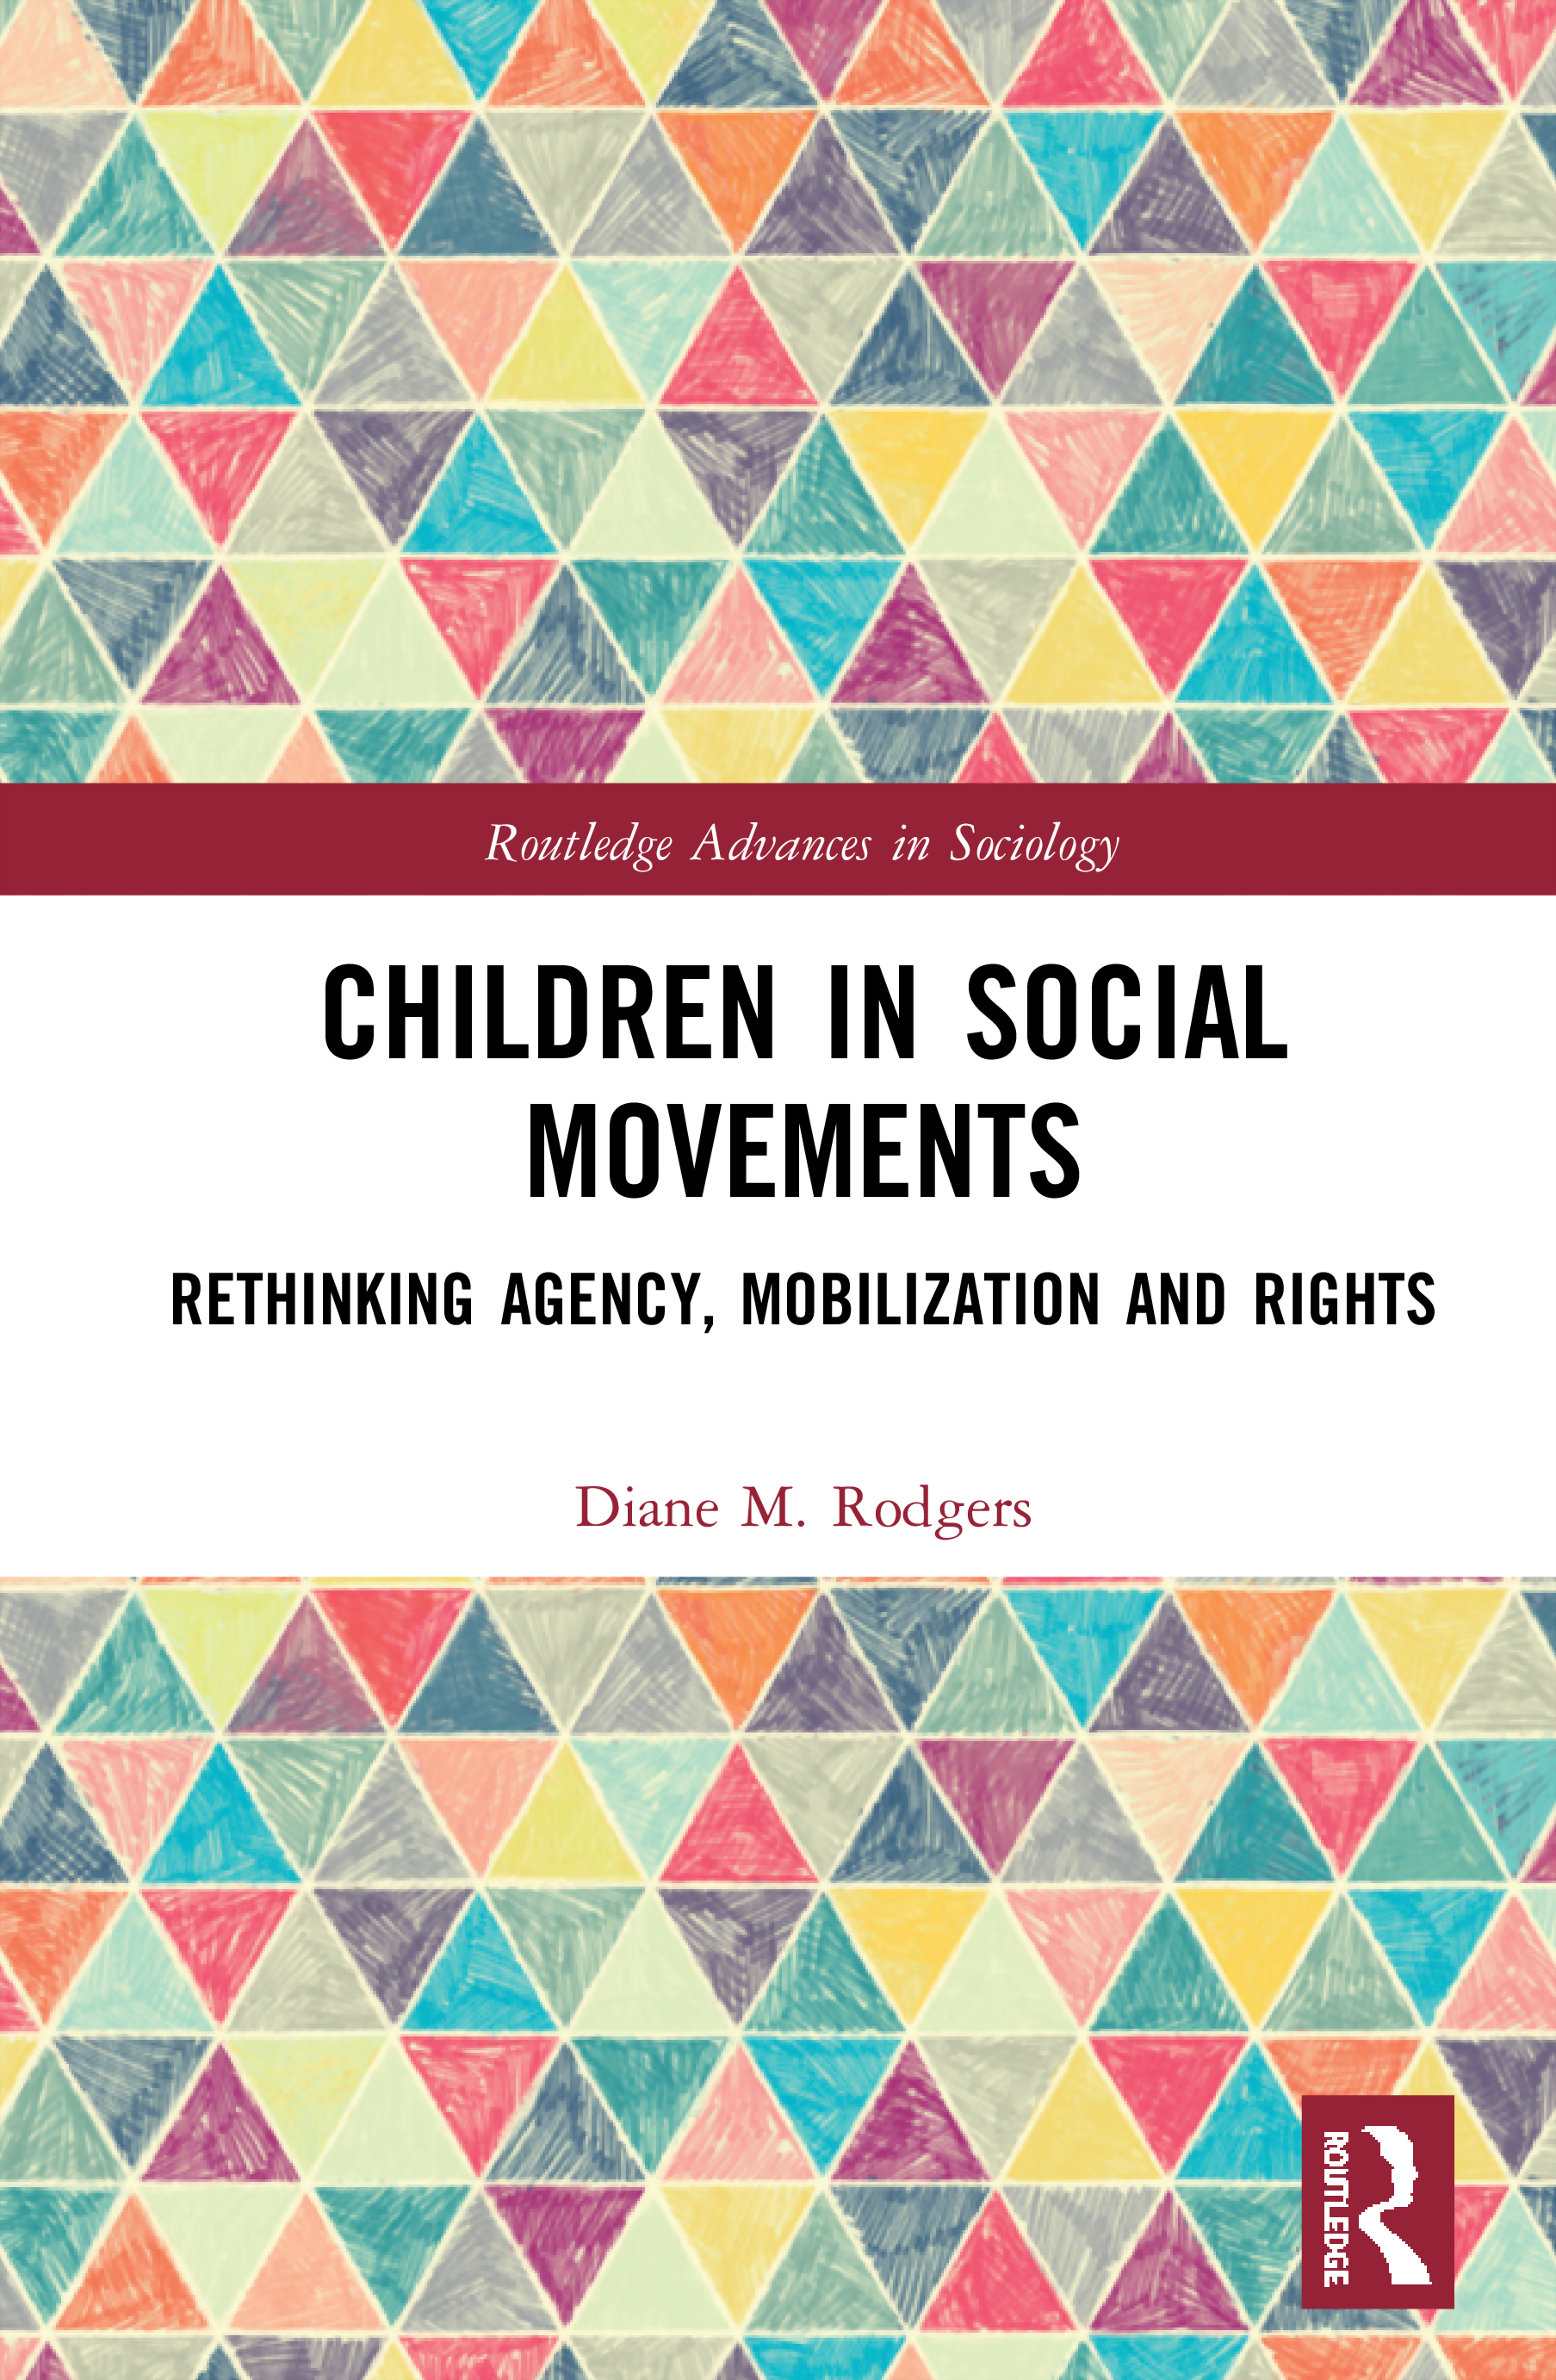 Children in Social Movements: Rethinking Agency, Mobilization and Rights book cover